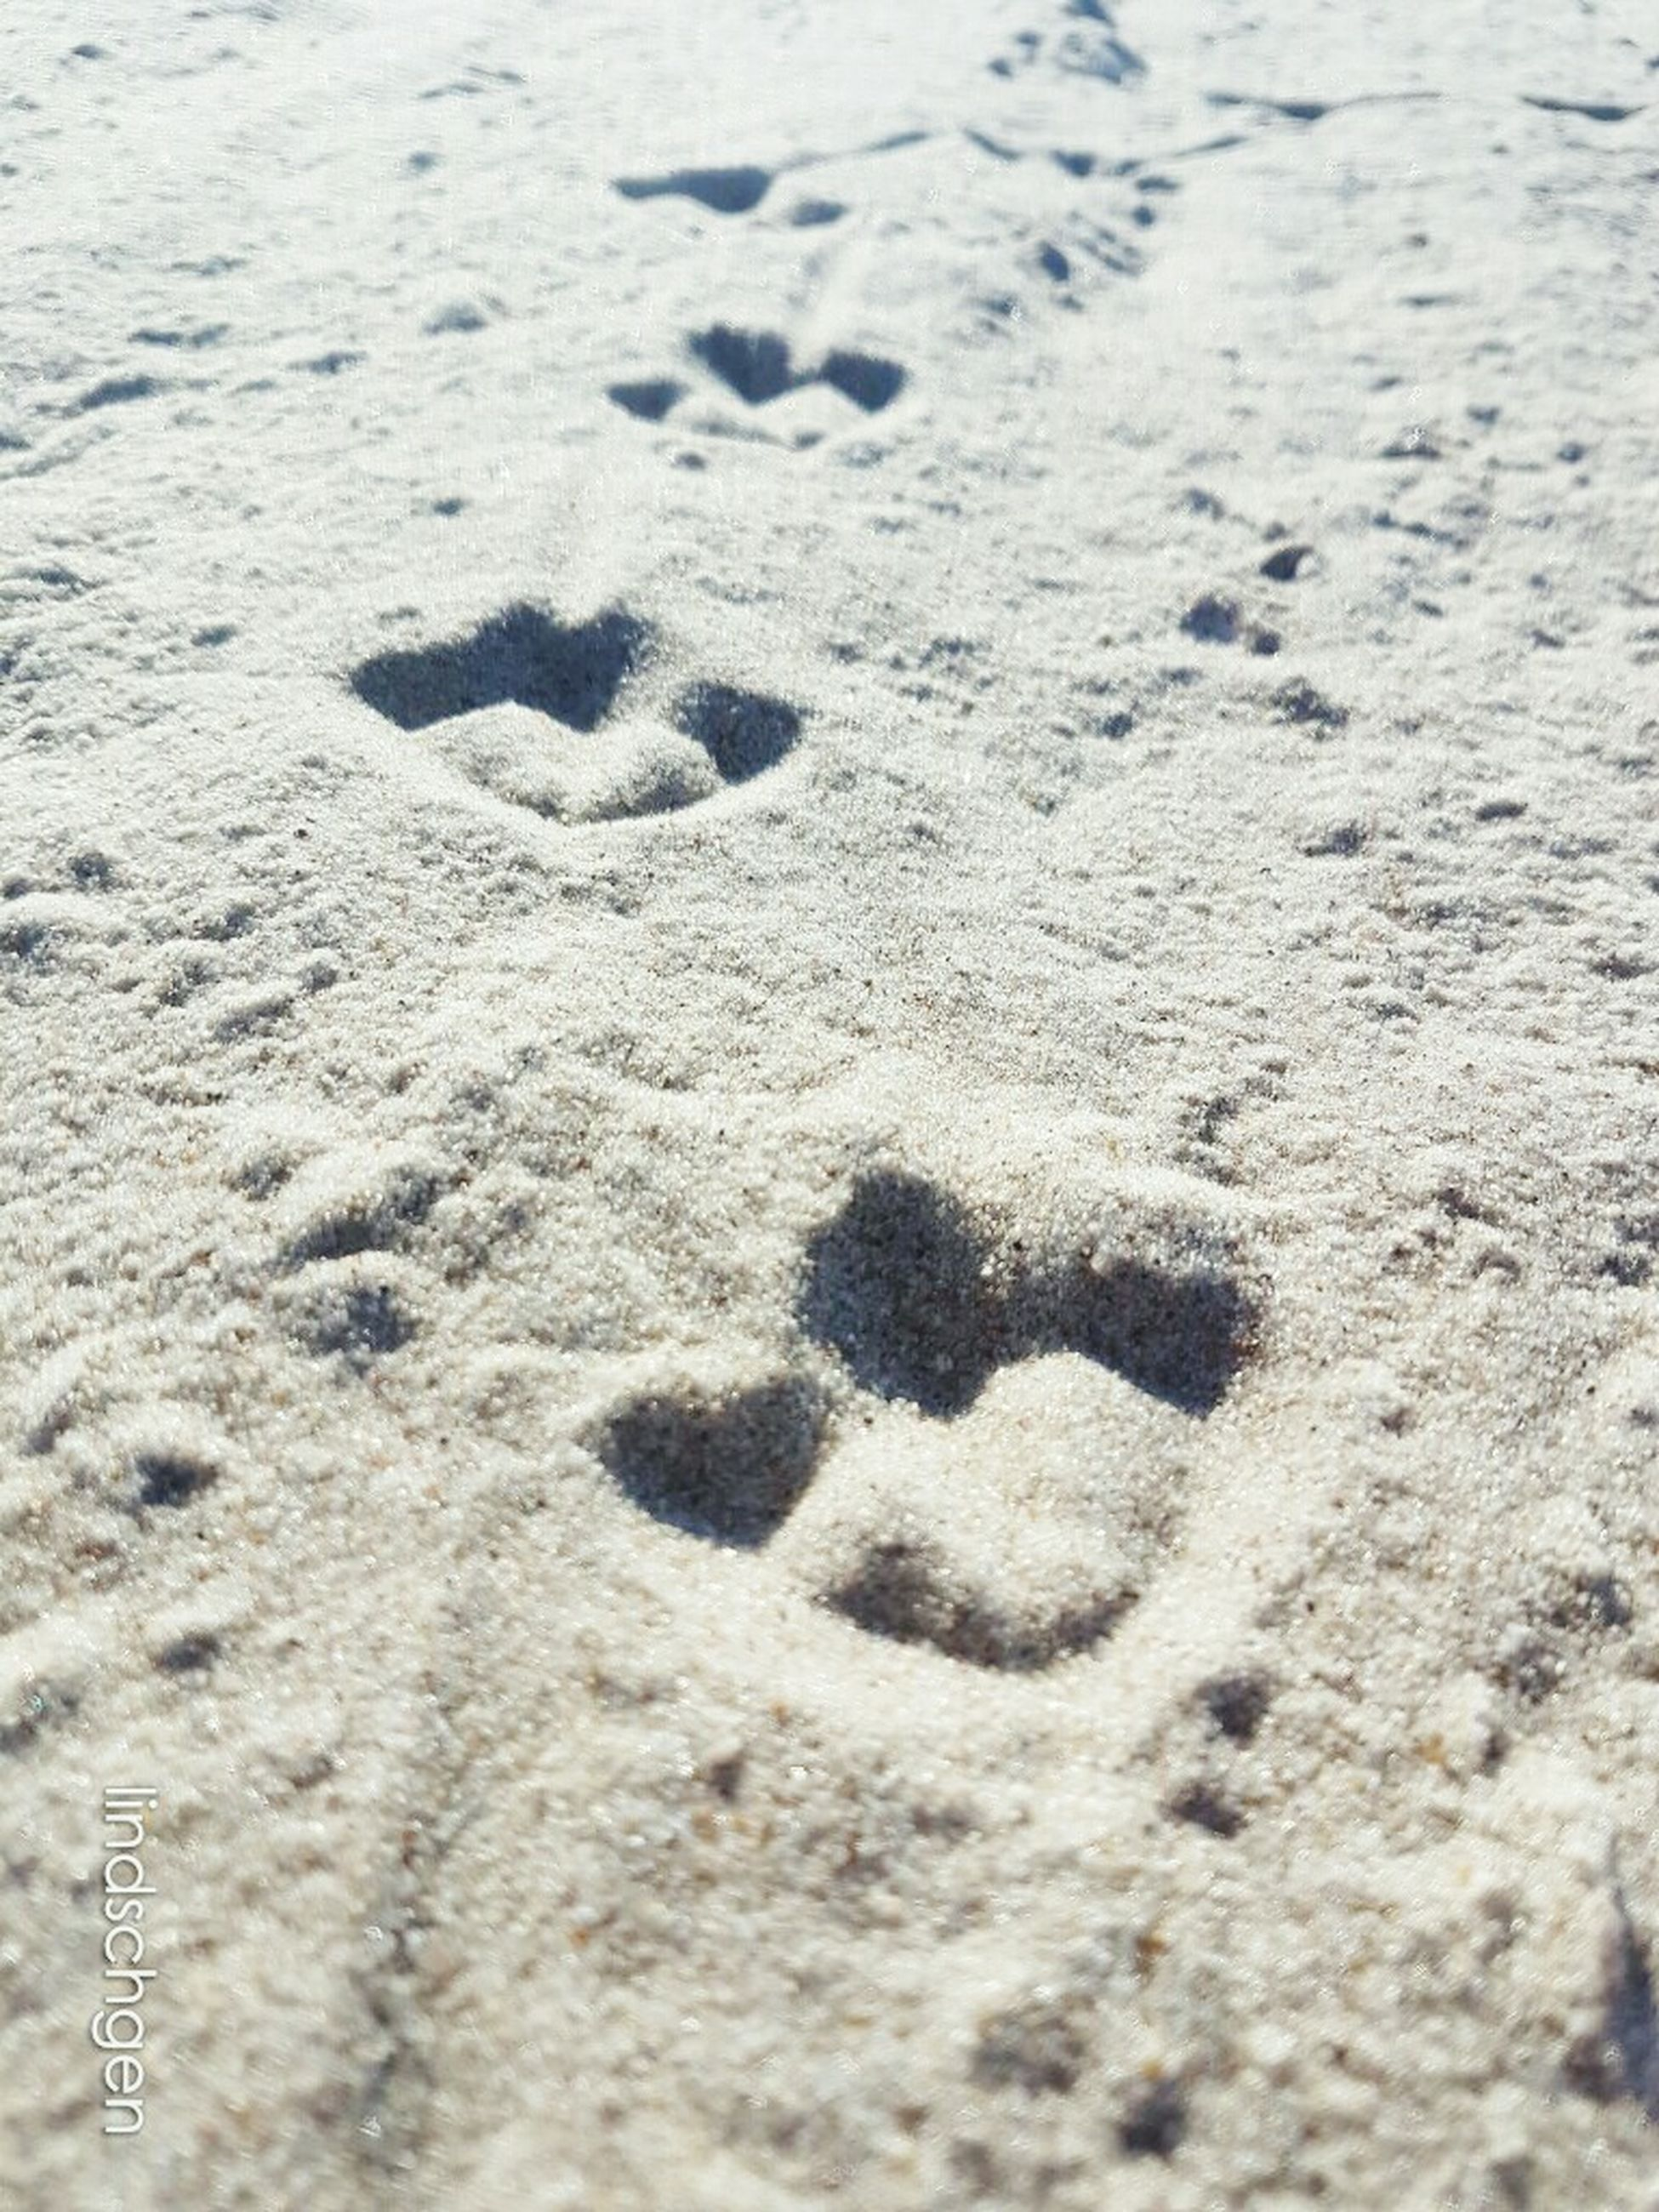 footprint, high angle view, mystery, beach, sand, identity, full frame, backgrounds, vacations, nature, outdoors, tourism, tranquility, non-urban scene, surface level, no people, wave pattern